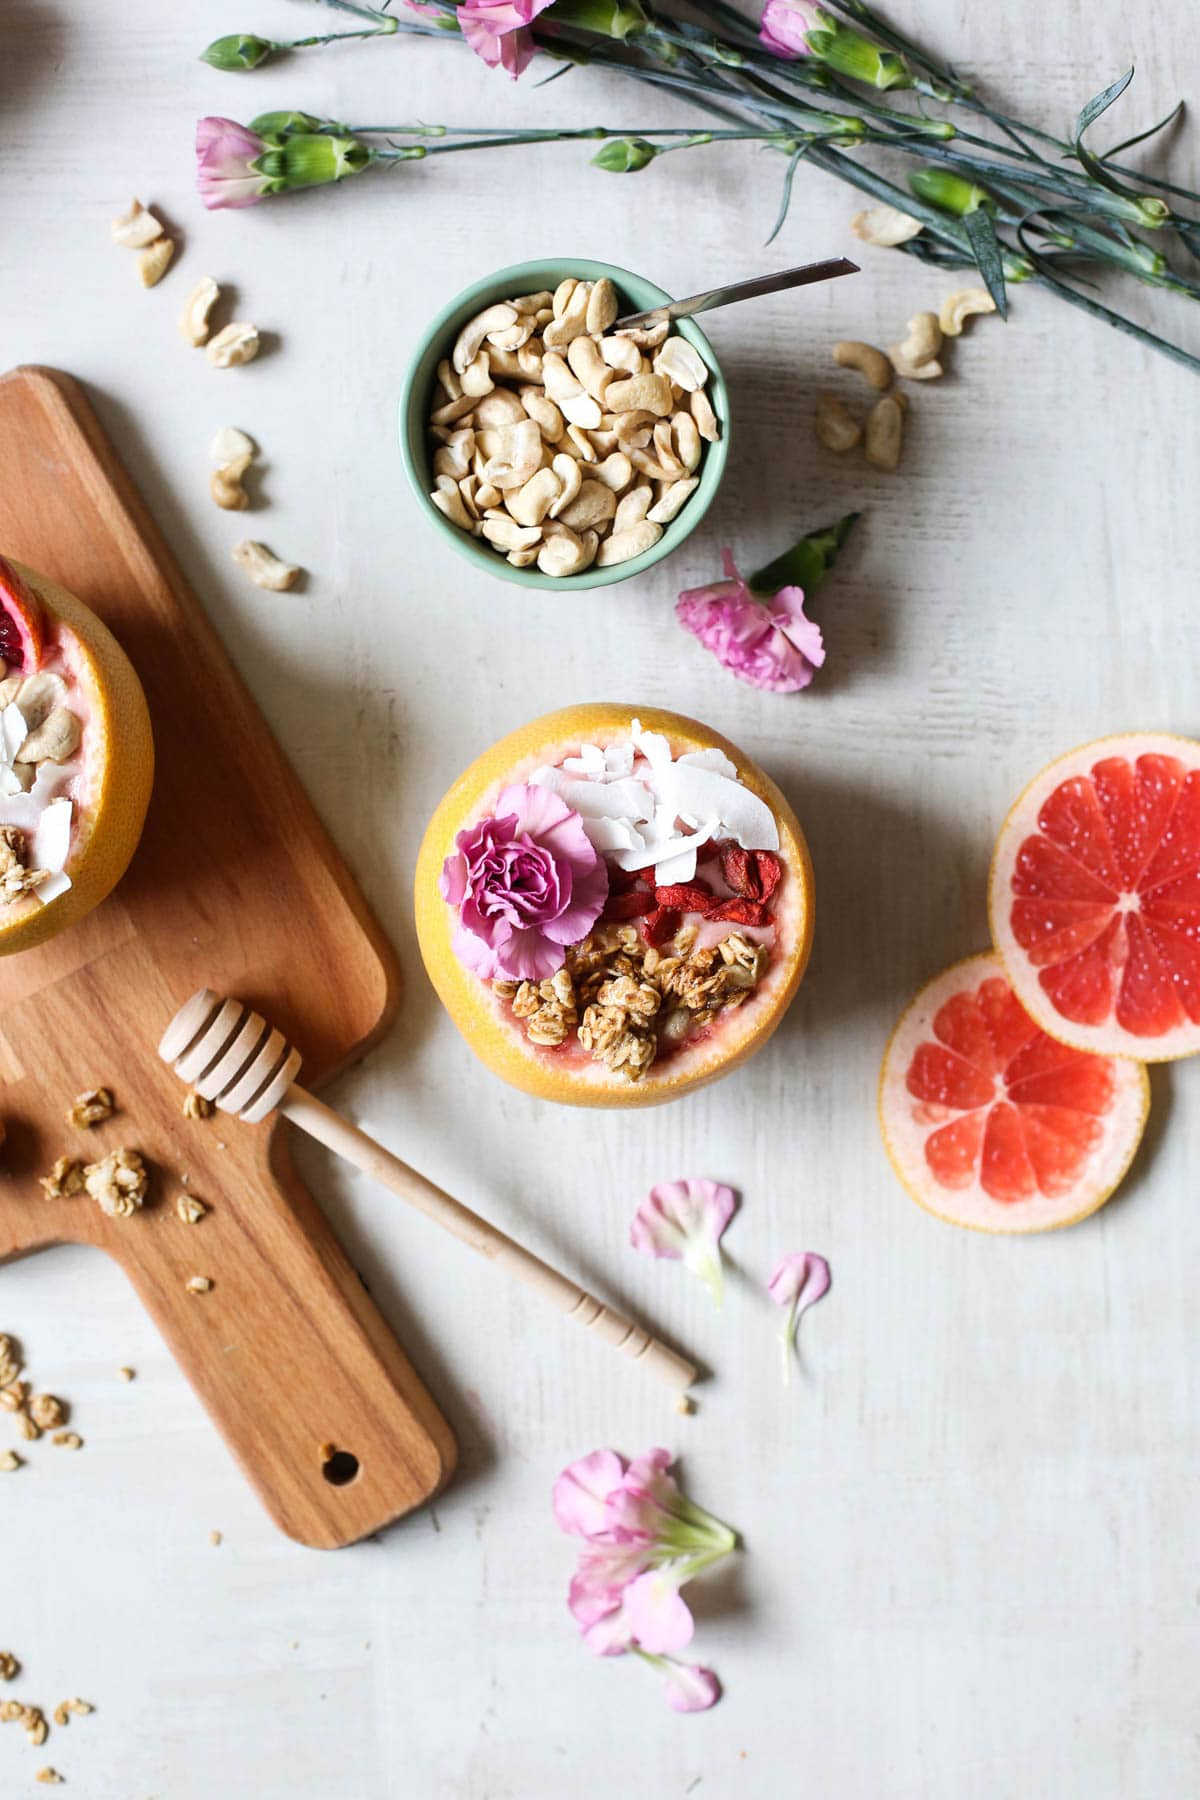 Winter Citrus Smoothie in Grapefruit Bowls by Sugar & Cloth, an award winning DIY blog.